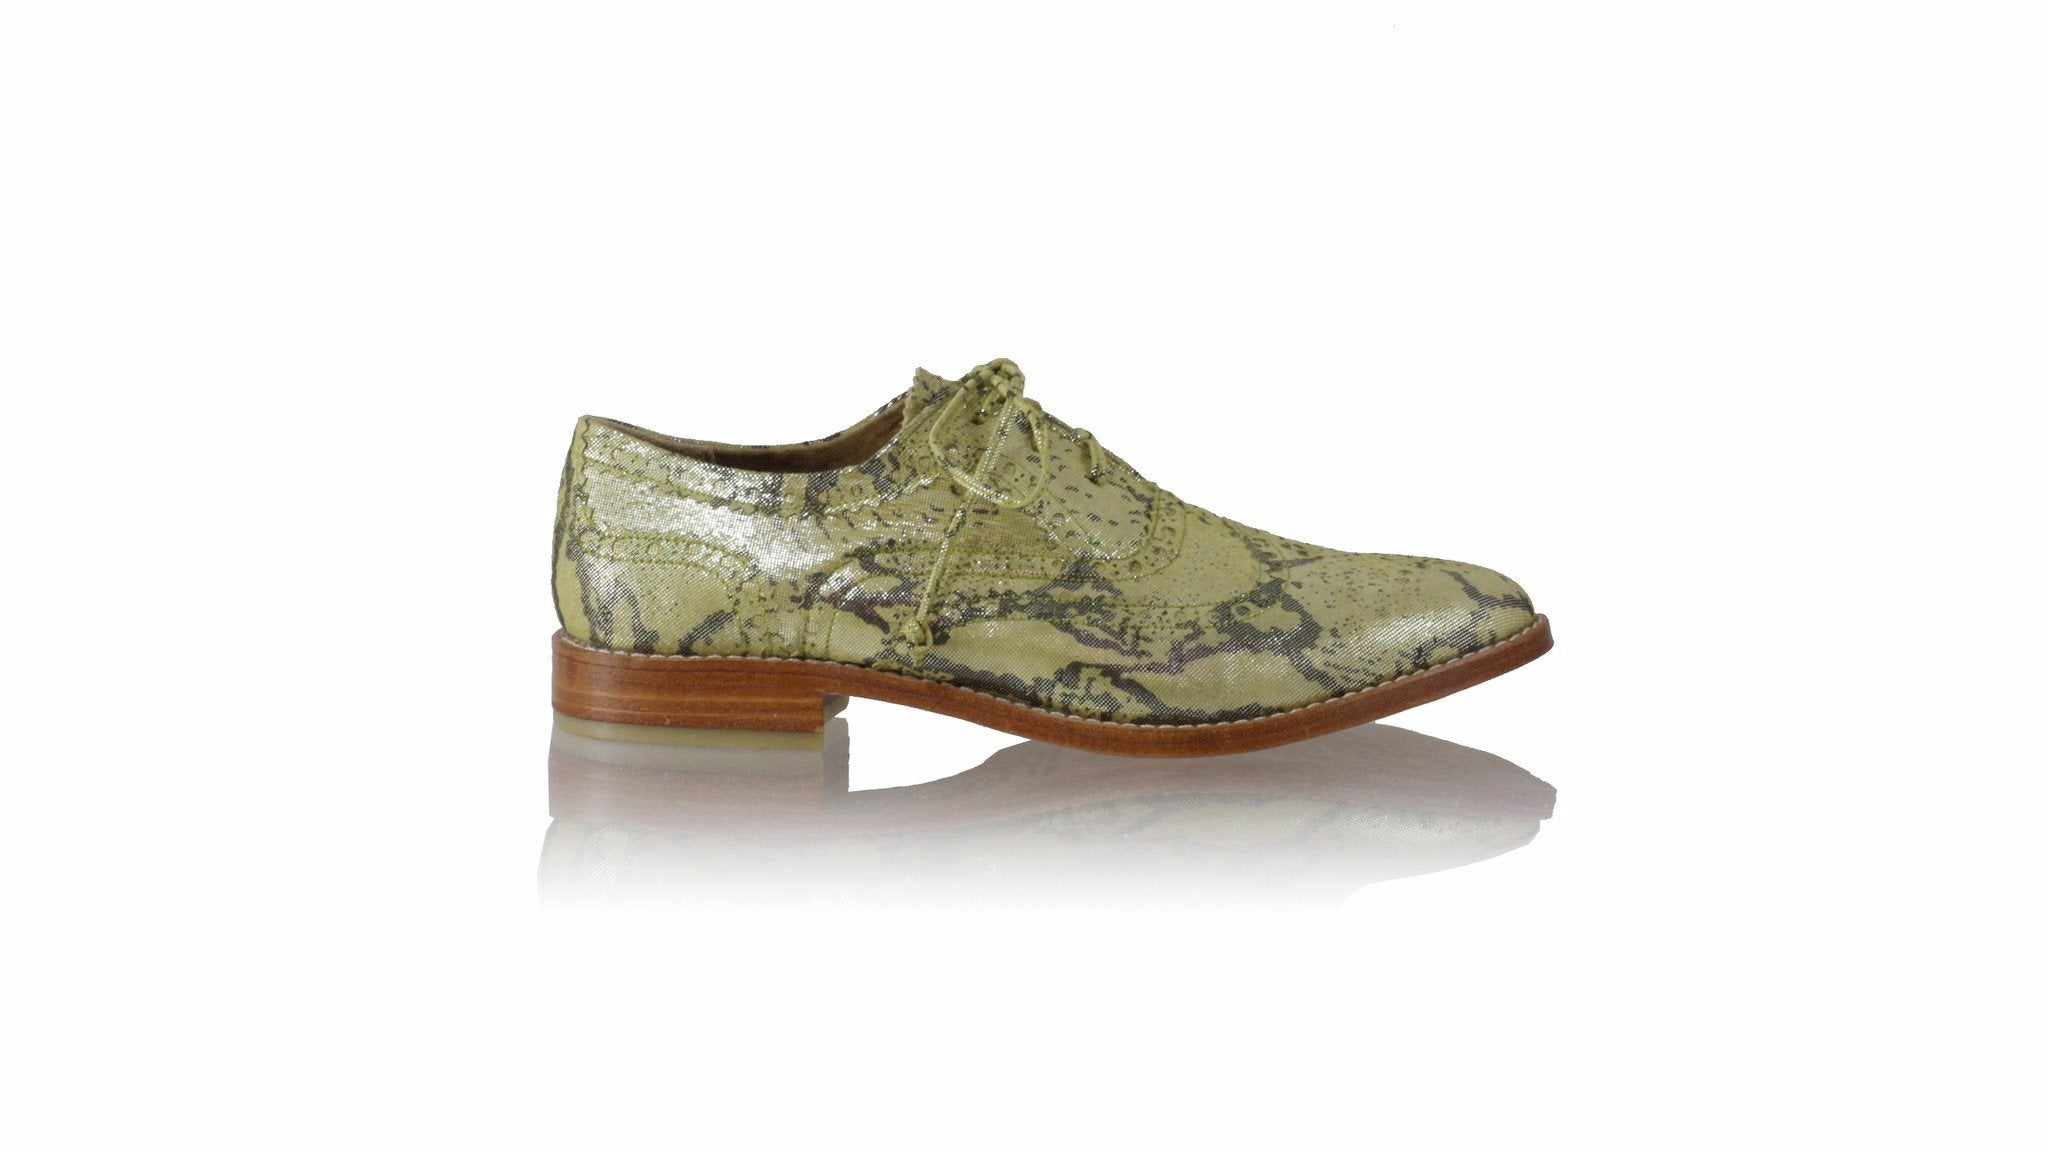 Leather-shoes-Pedro 25mm Flat - Yellow Snake Print-flats laceup-NILUH DJELANTIK-NILUH DJELANTIK